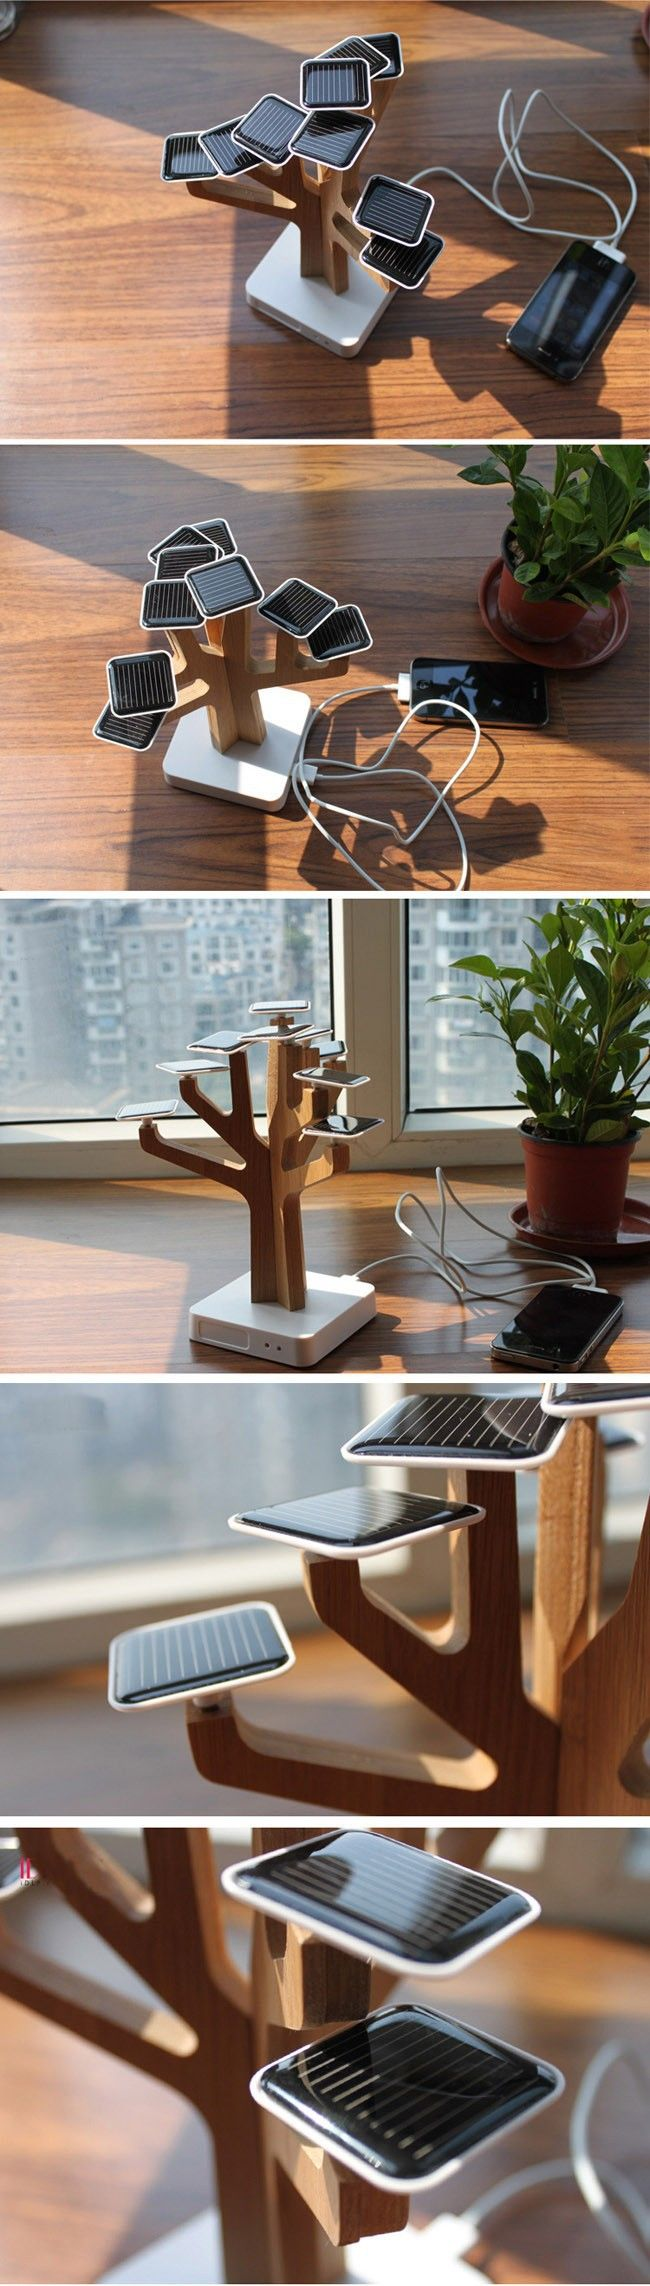 Suntree Solar Charger Inspired By Nature